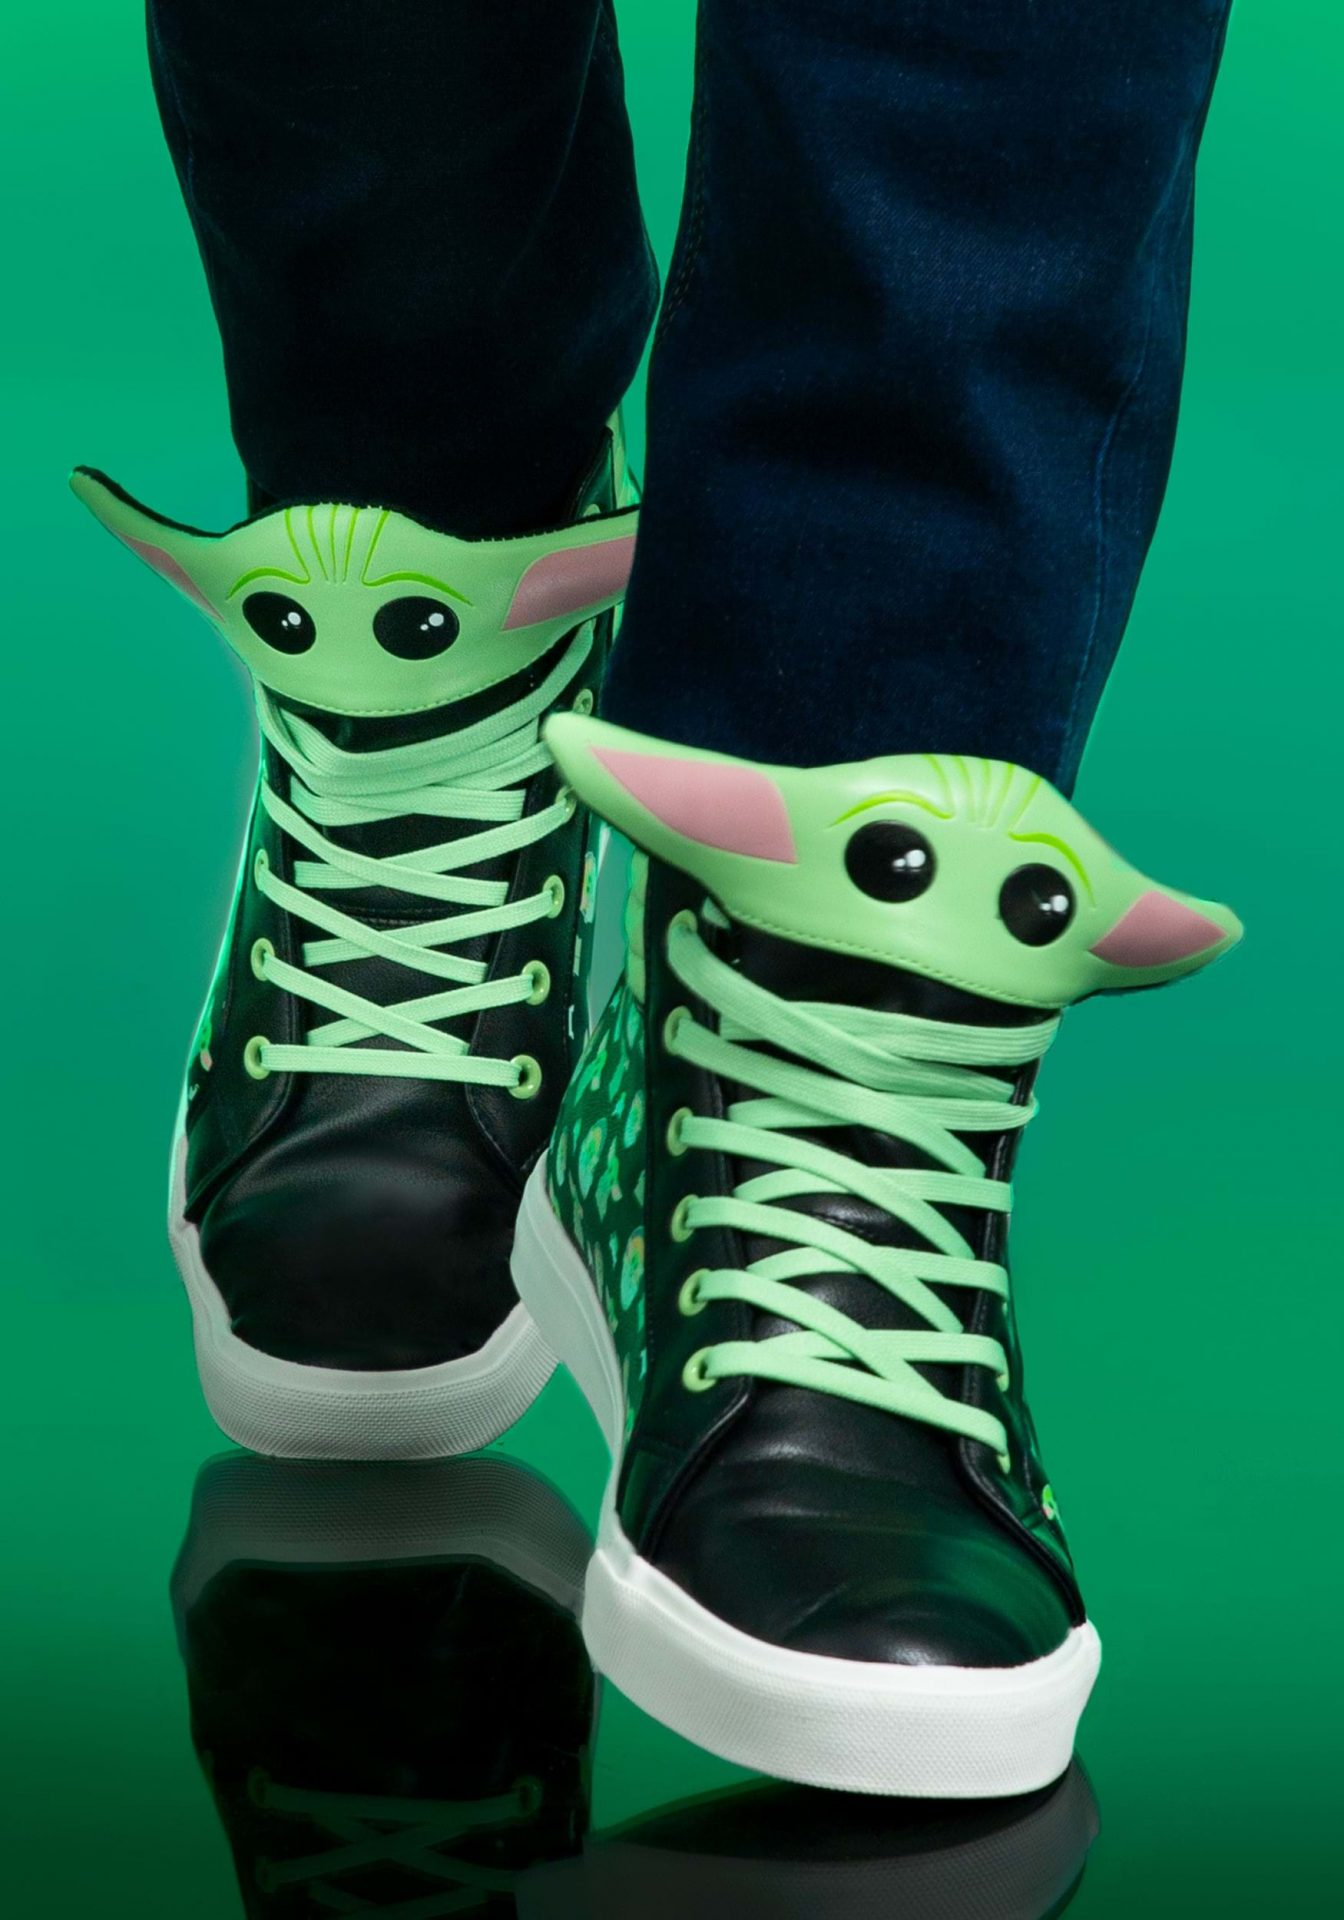 Show your love for Baby Yoda with these incredible (and very green) shoes from Fun.com